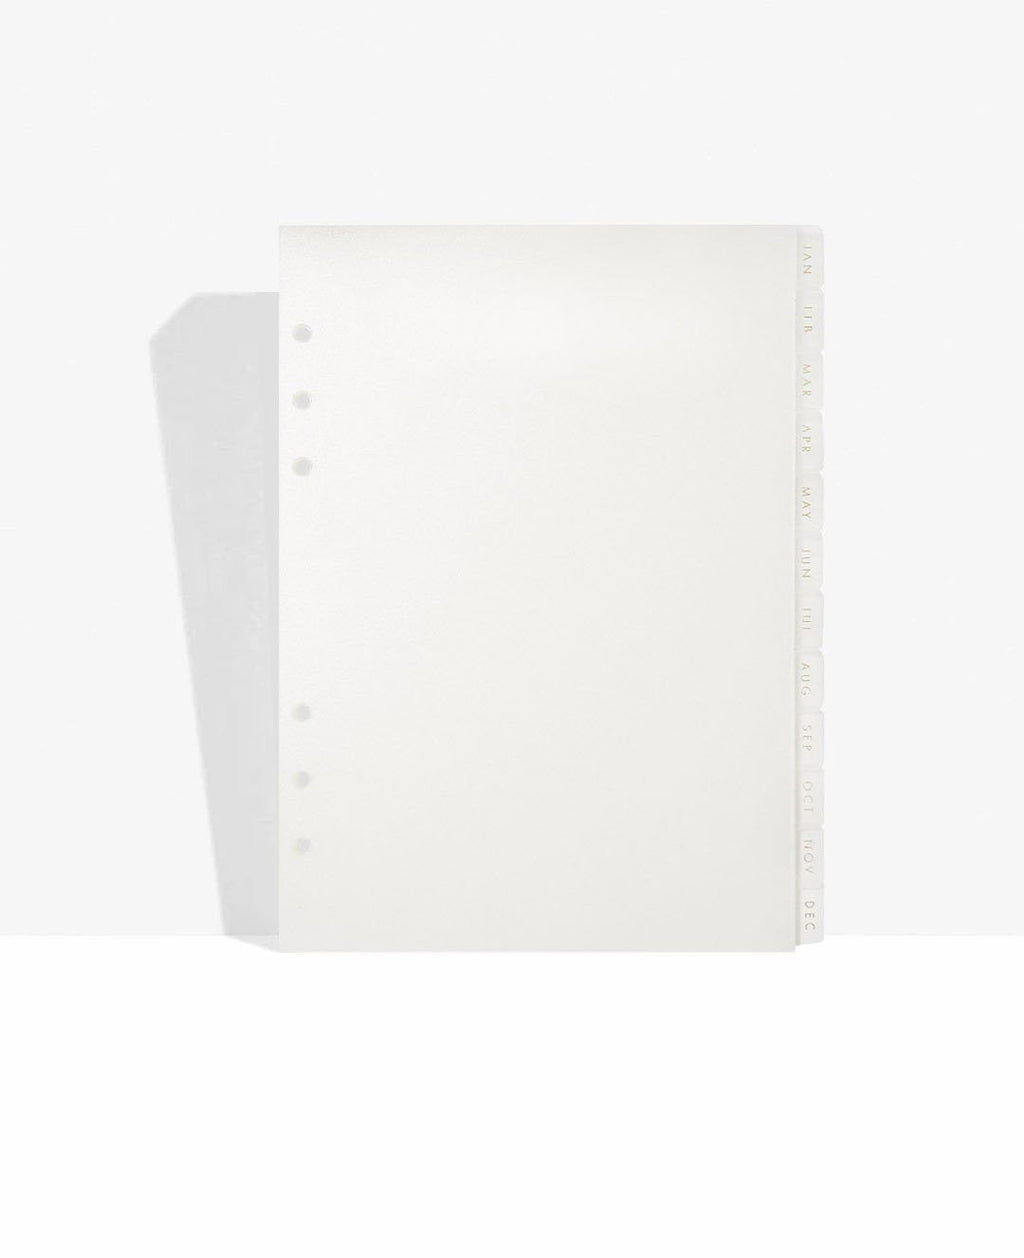 Monthly Agenda Dividers - CGD LONDON ?id=16462447738903